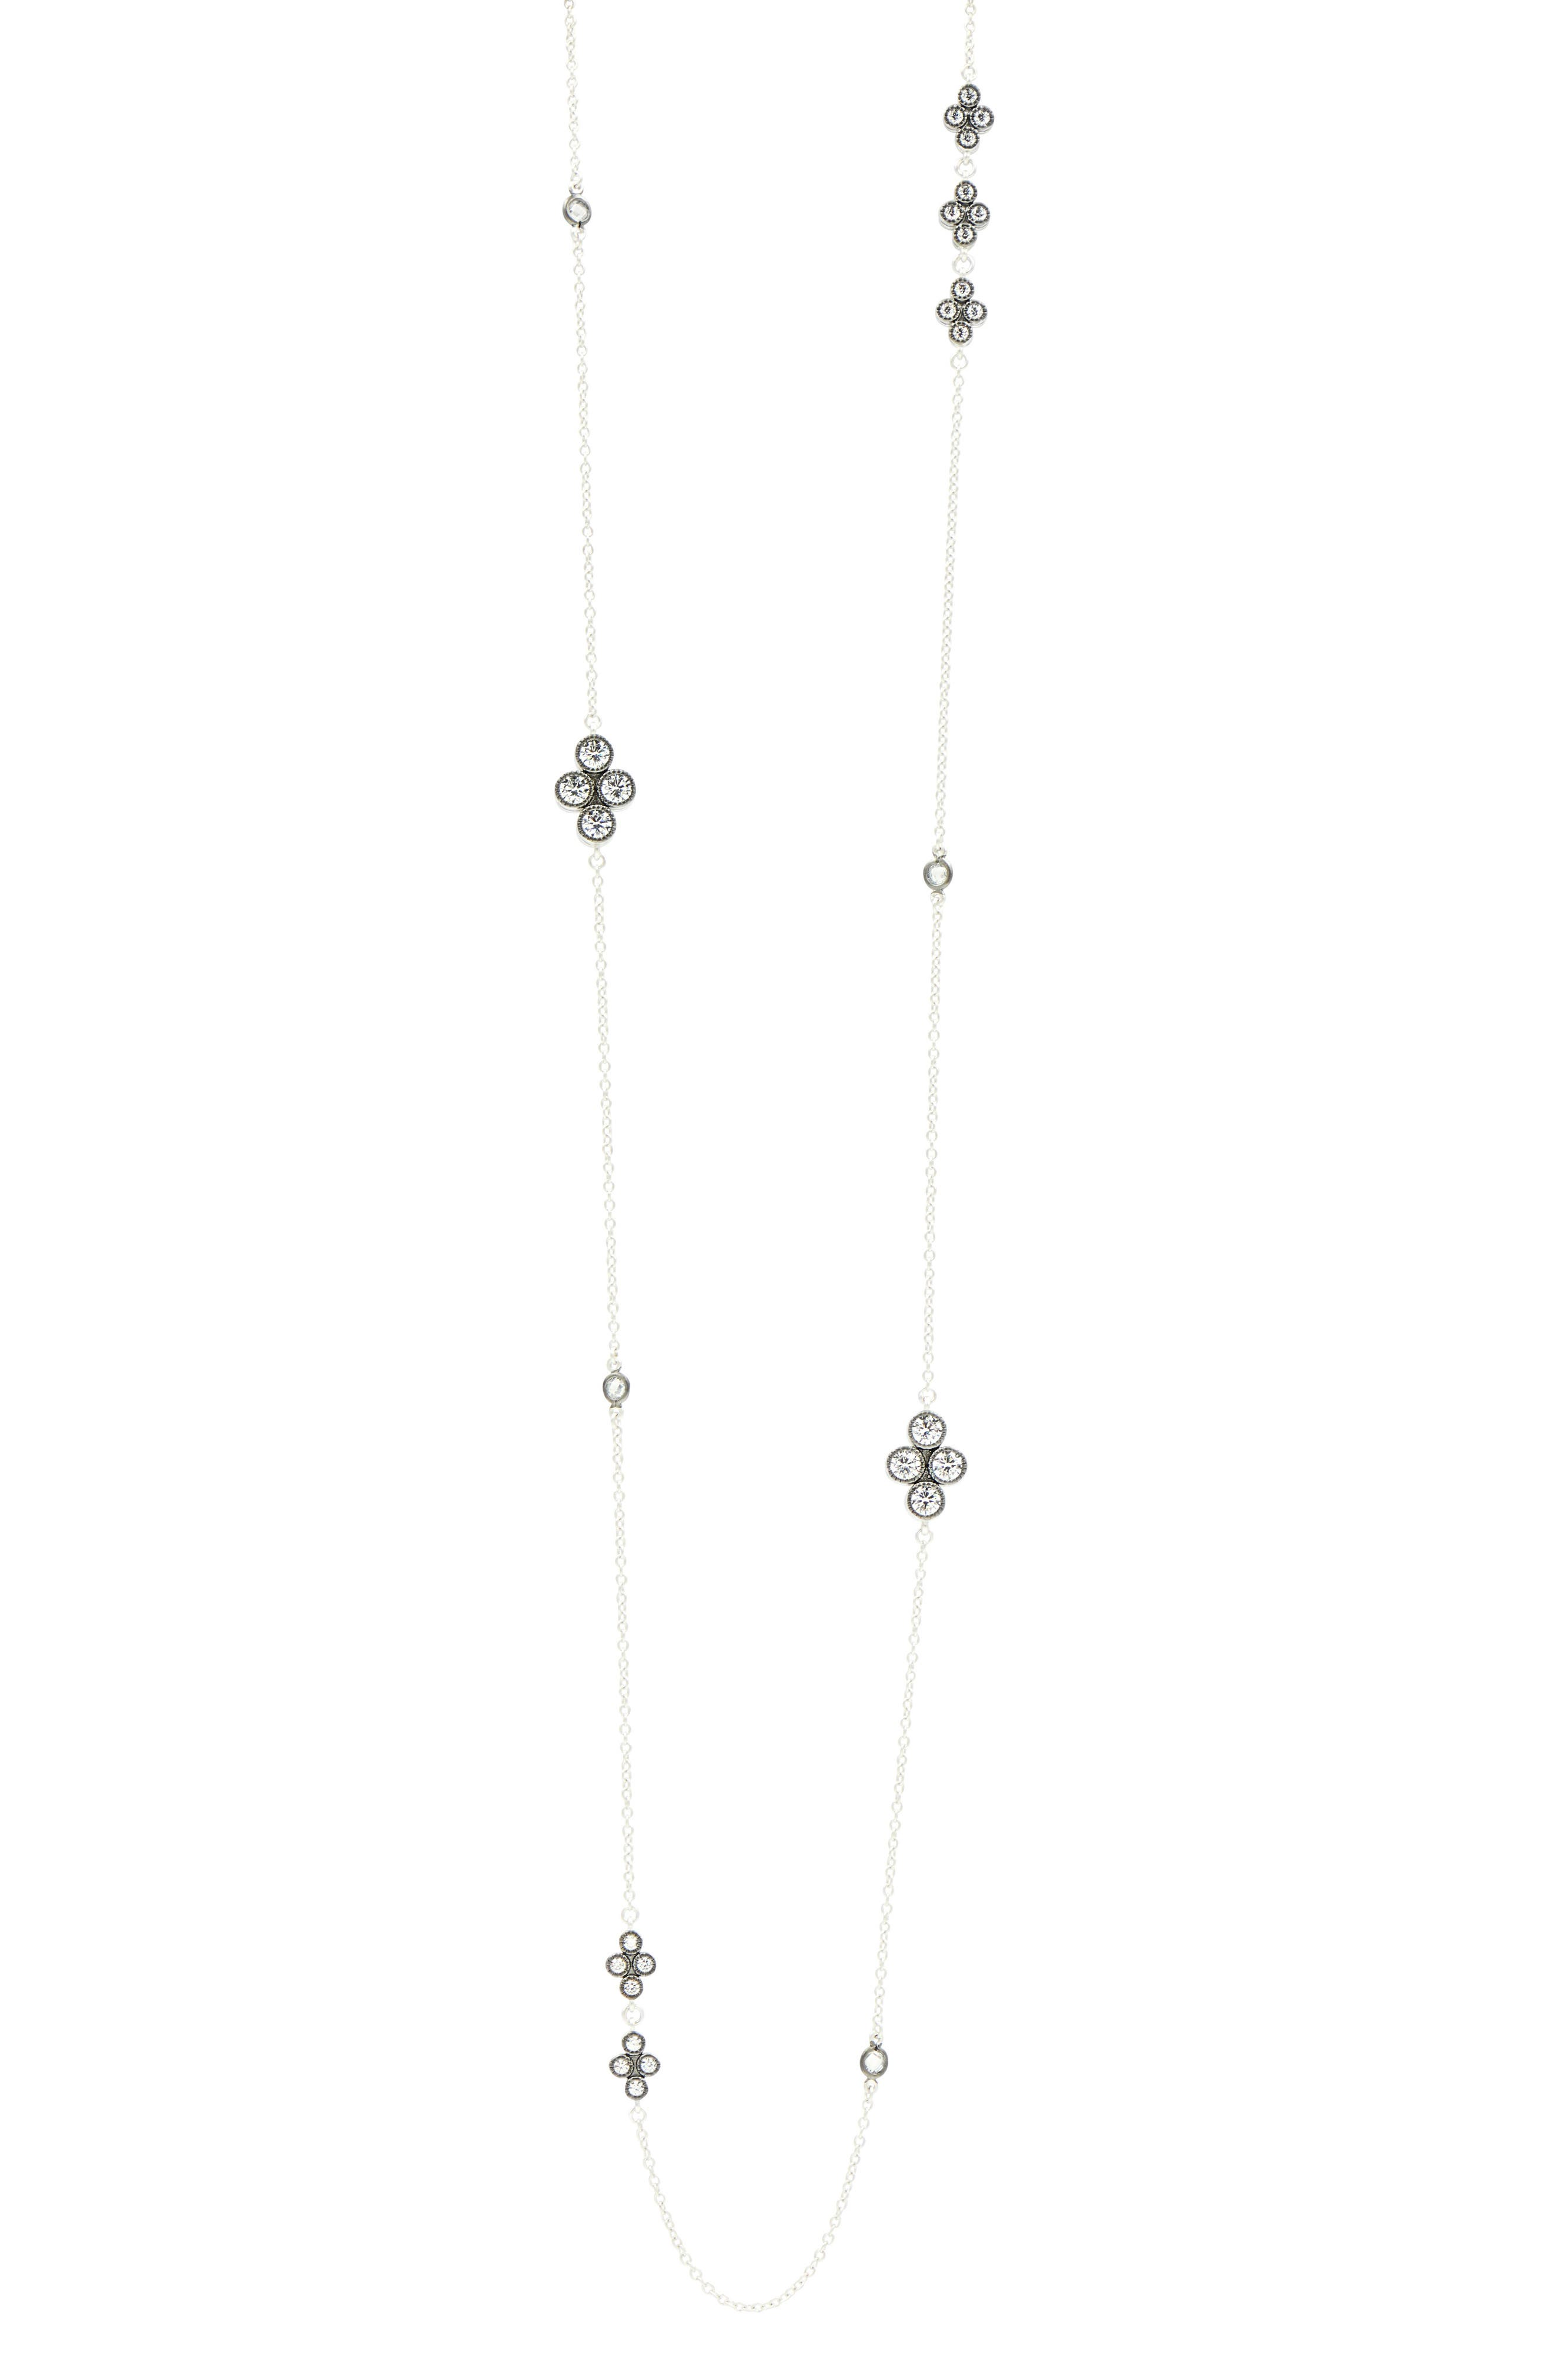 Industrial Finish Long Station Necklace,                         Main,                         color, Black/ Silver